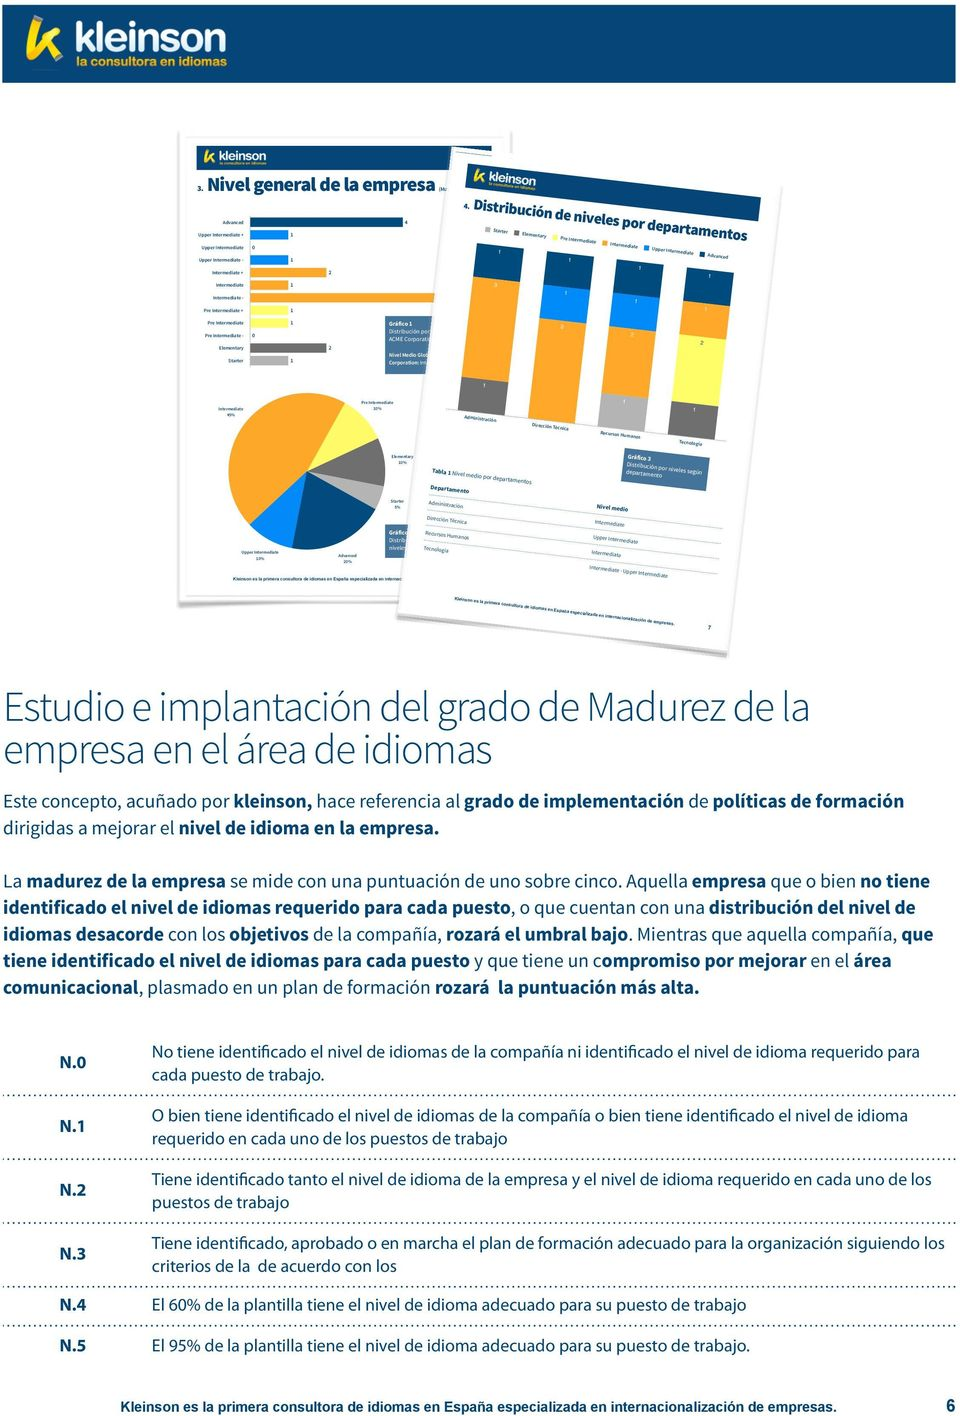 Elementary Starter 2 Gráfico Distribución por niveles en ACME Corporation Nivel Medio Global De ACME Corporation: Intermediate - 3 2 2 Intermediate 45% Pre Intermediate 0% Administración Dirección